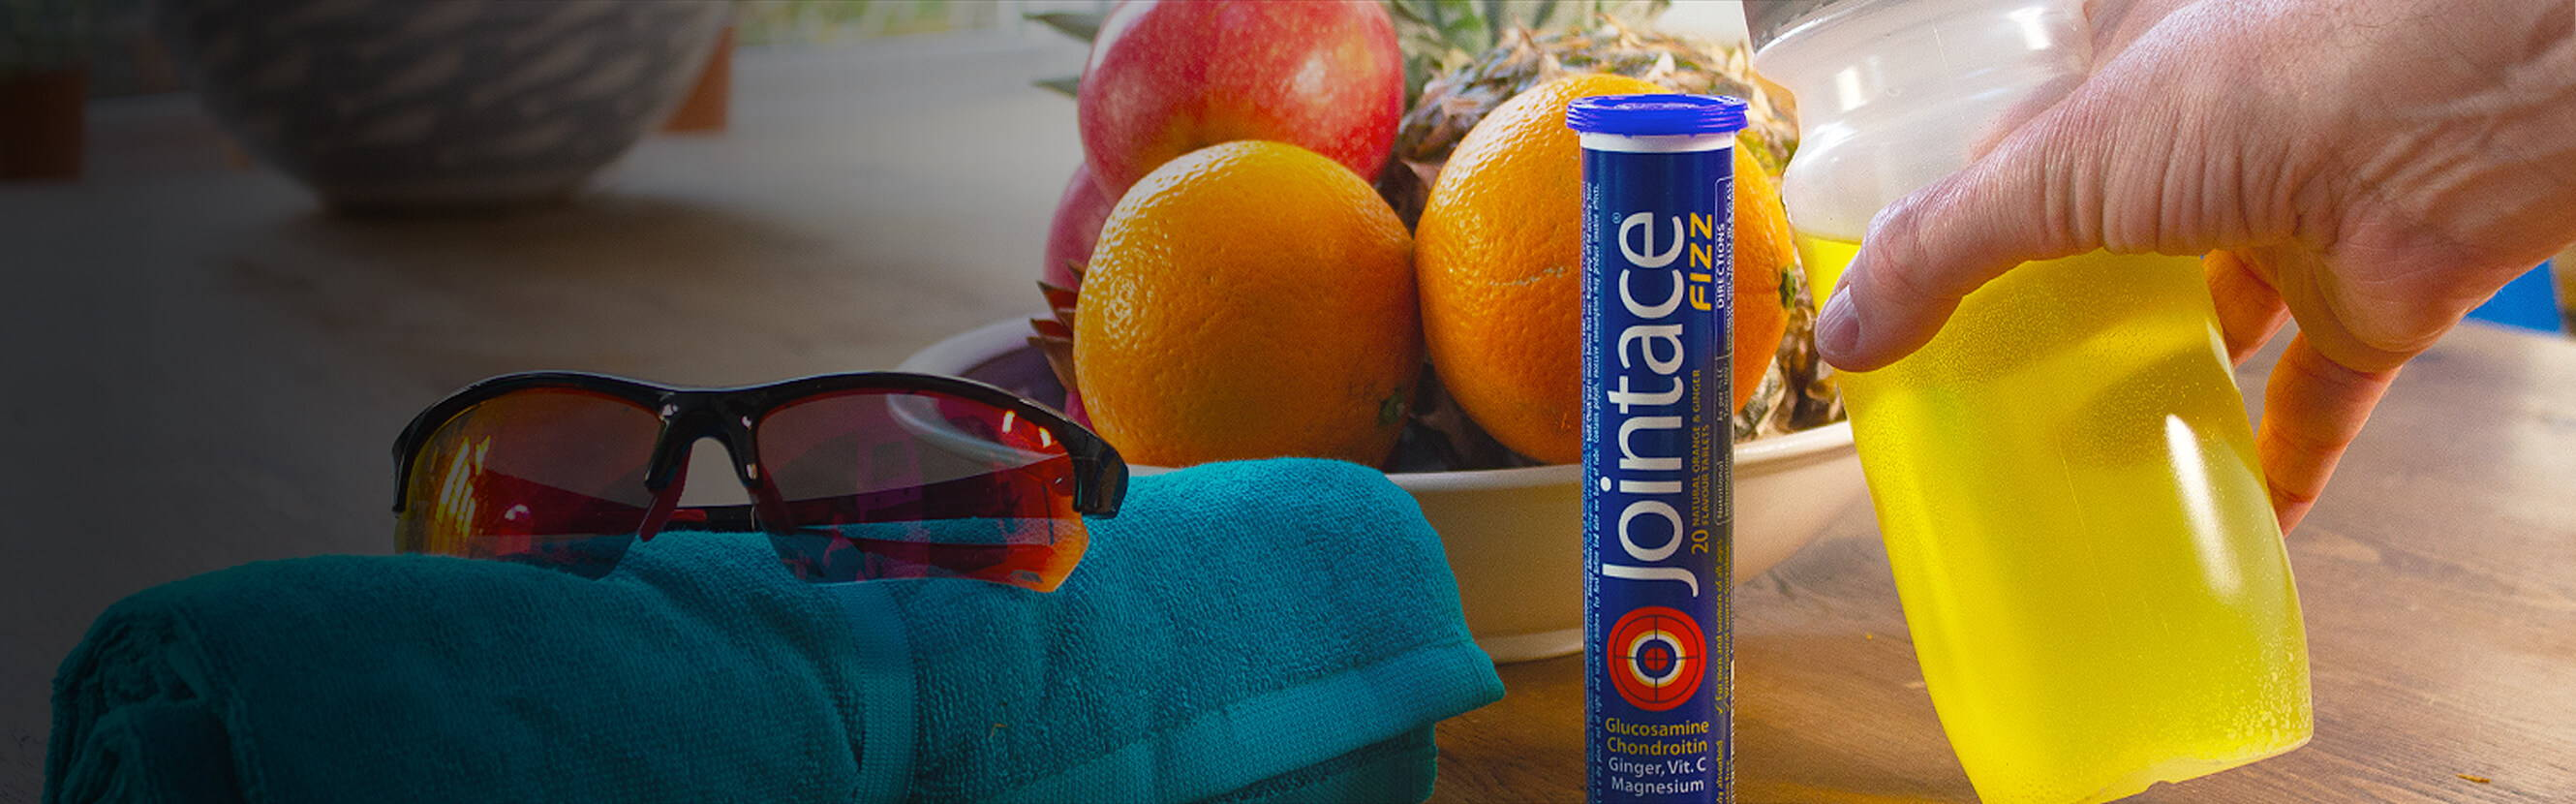 An active life is about vitality, energy and living life with a with a certain sparkle. Jointace Fizz gently dissolves to make a fresh, light, orange and ginger drink that's full of nutrients from Vitamin C to Ginger Root extract, one of the world's most popular botanicals.